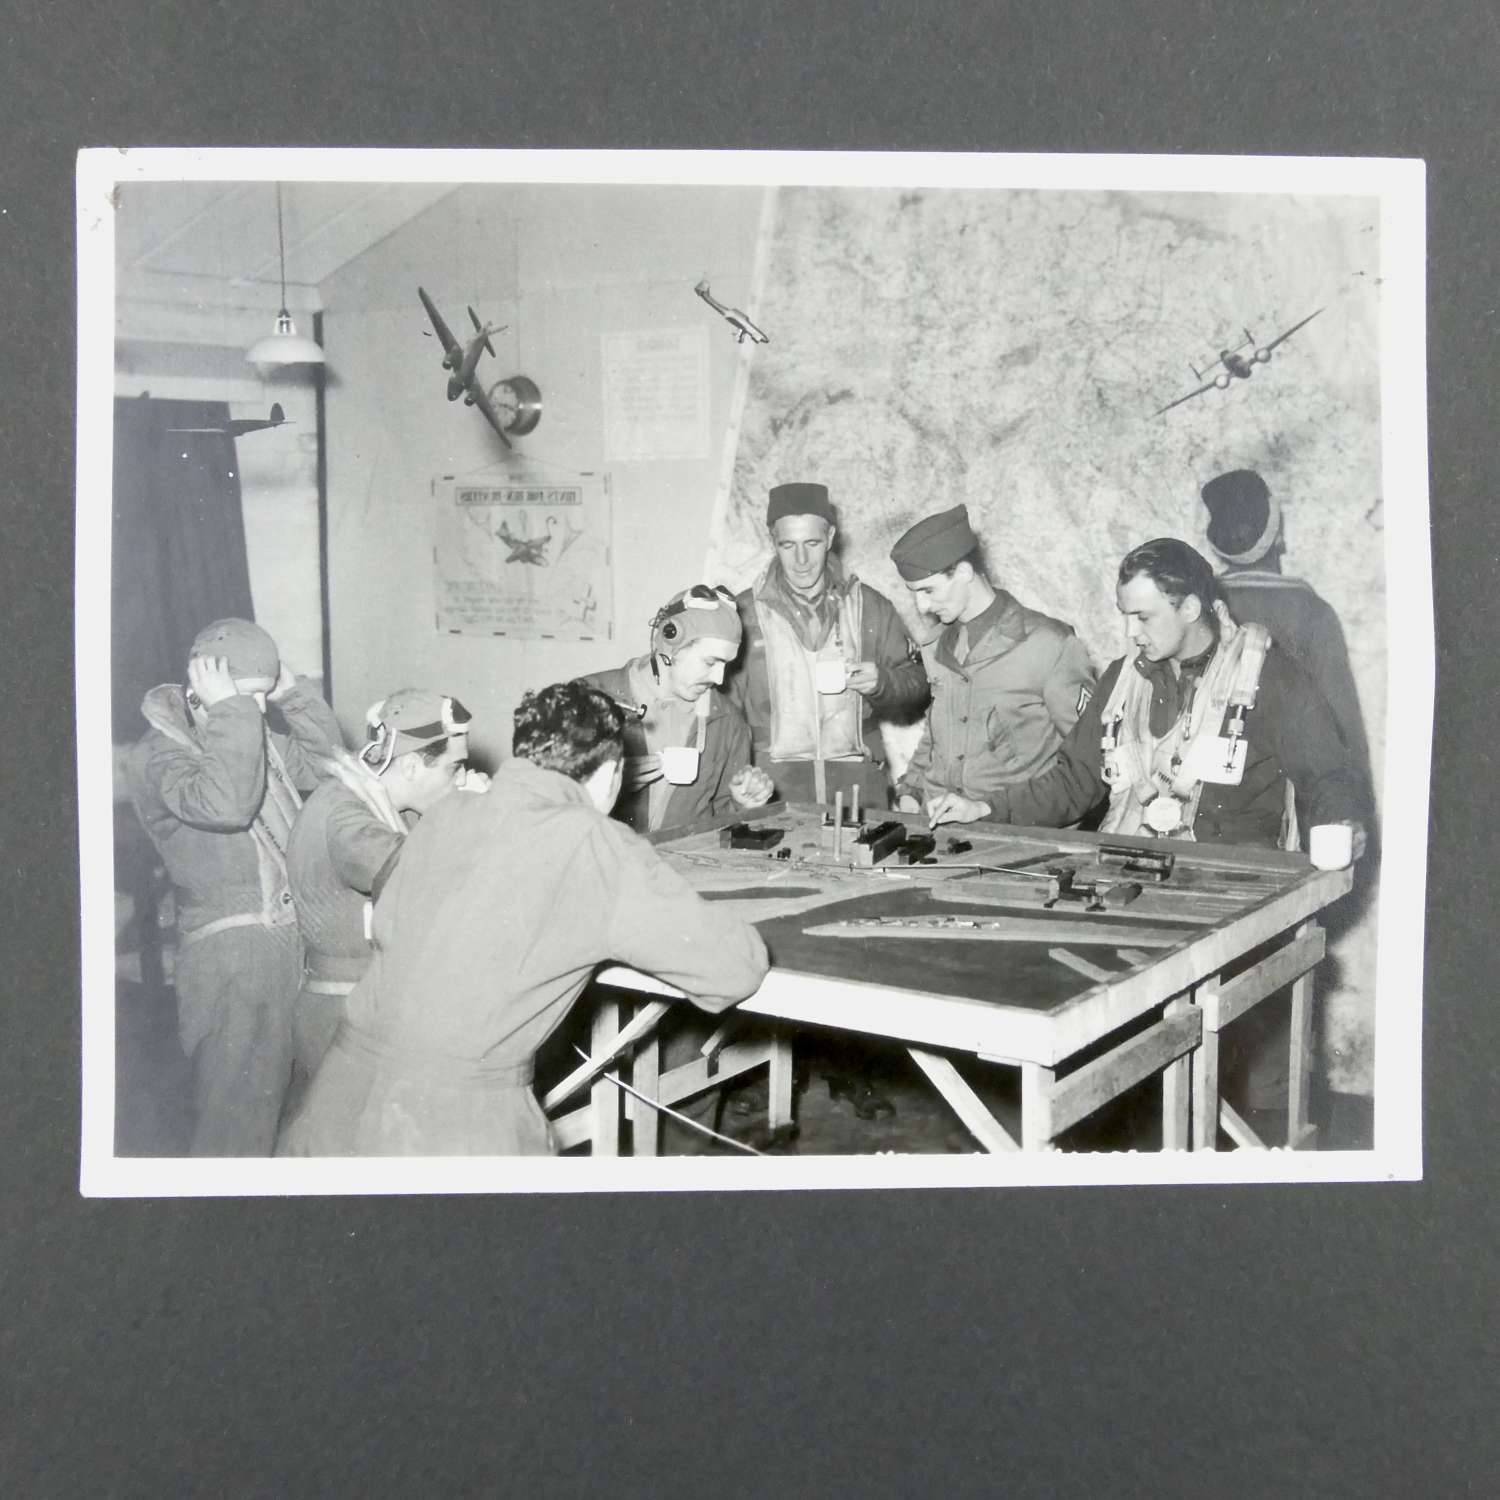 Original USAAF 322nd bomb group briefing photograph